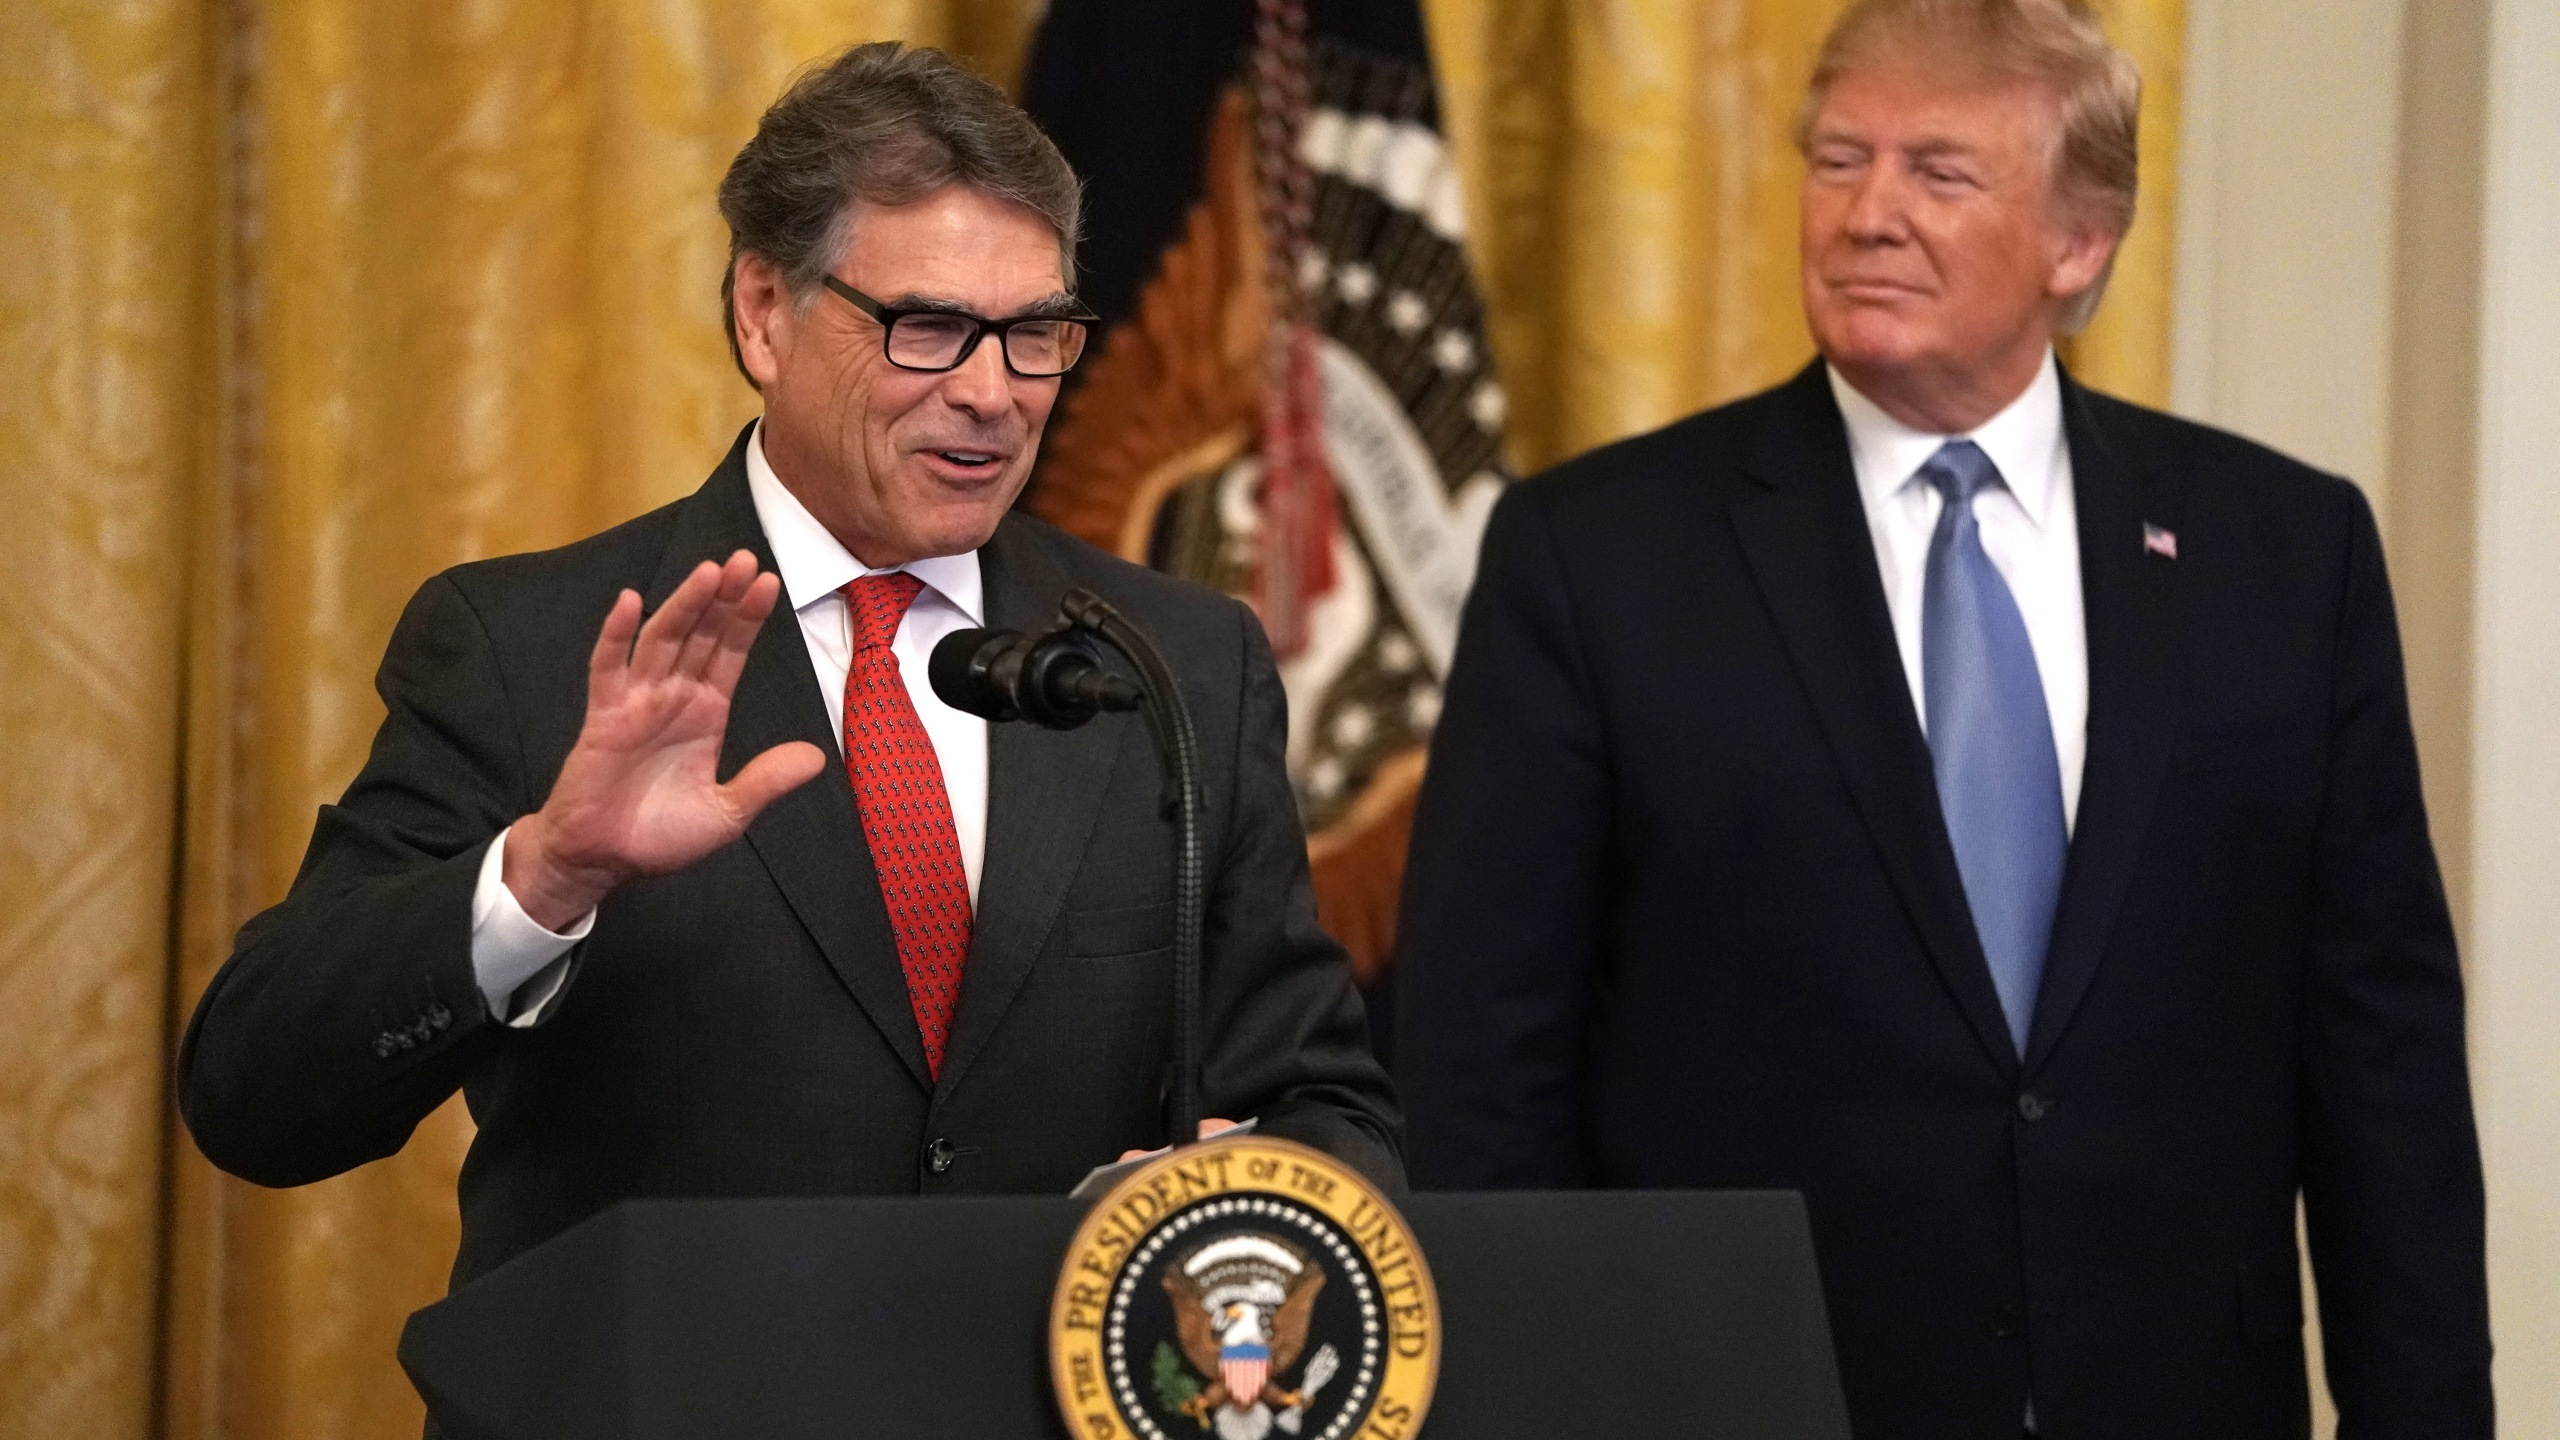 U.S. Secretary of Energy Rick Perry speaks as President Donald Trump looks on during an East Room event on the environment, July 7, 2019, at the White House in Washington, D.C. (Credit: Alex Wong/Getty Images)